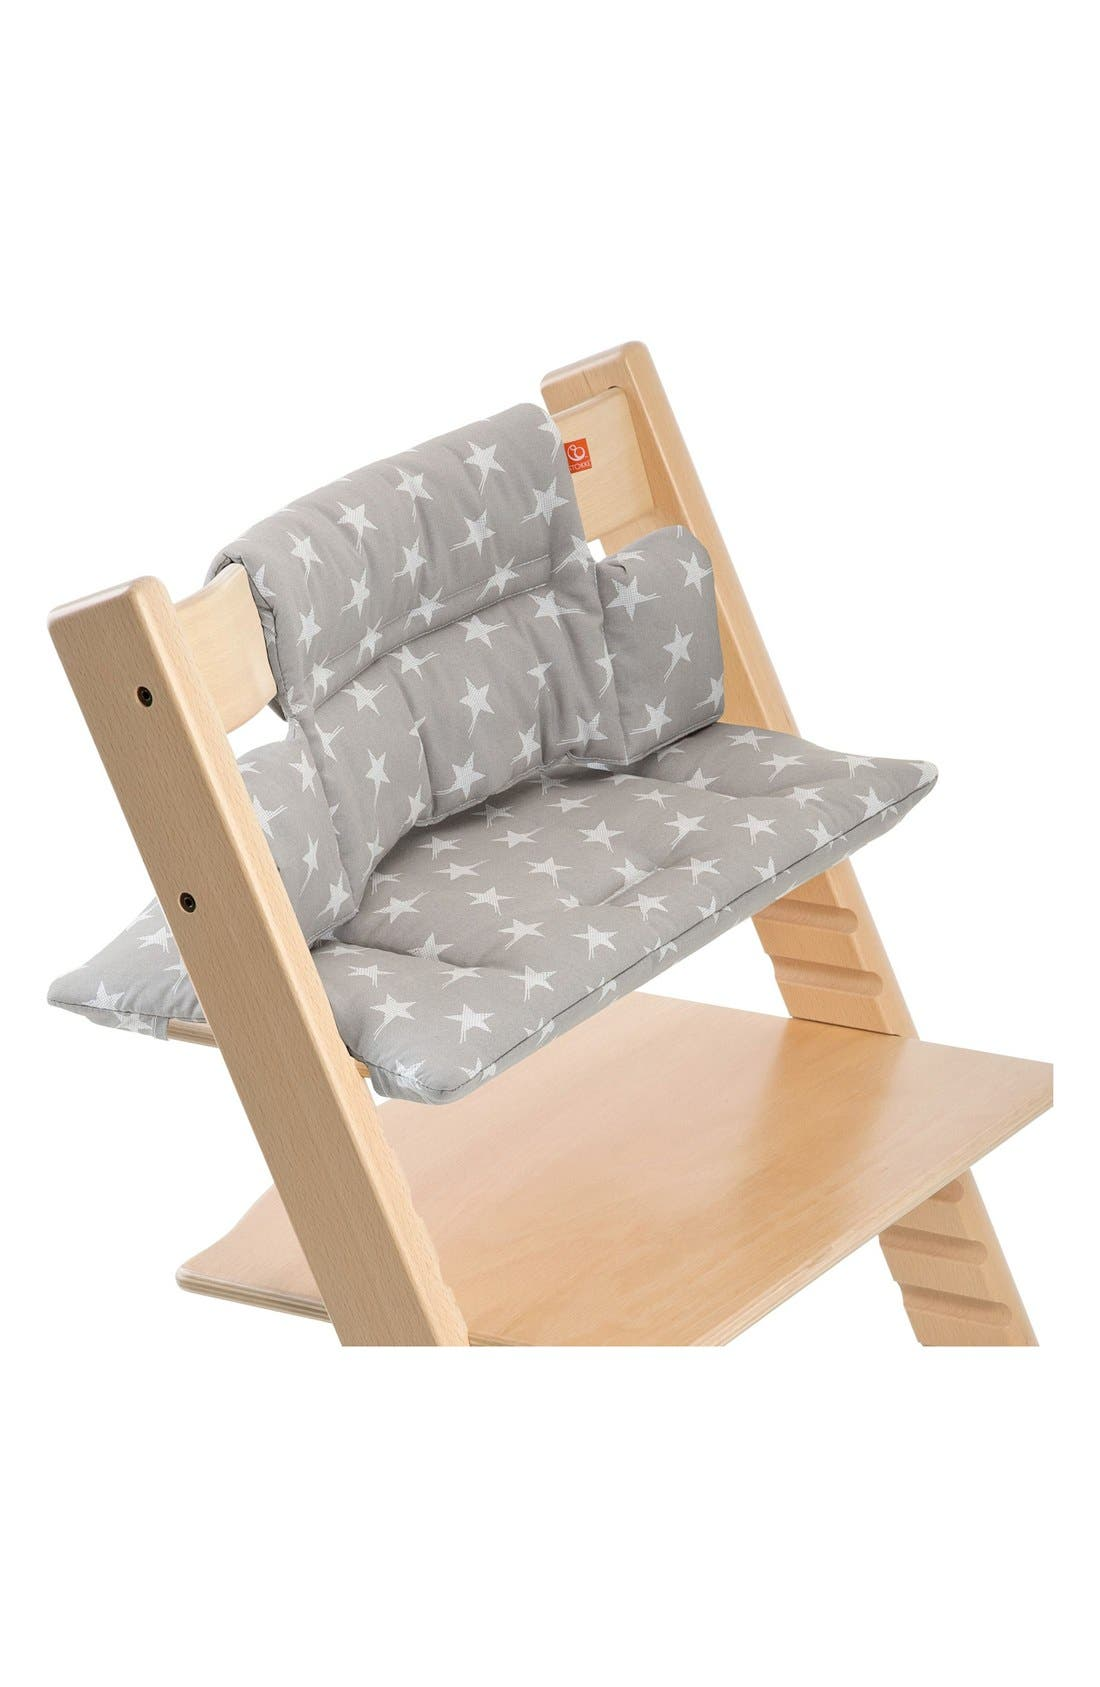 Alternate Image 1 Selected - Stokke 'Tripp Trapp® Classic' Seat Cushions